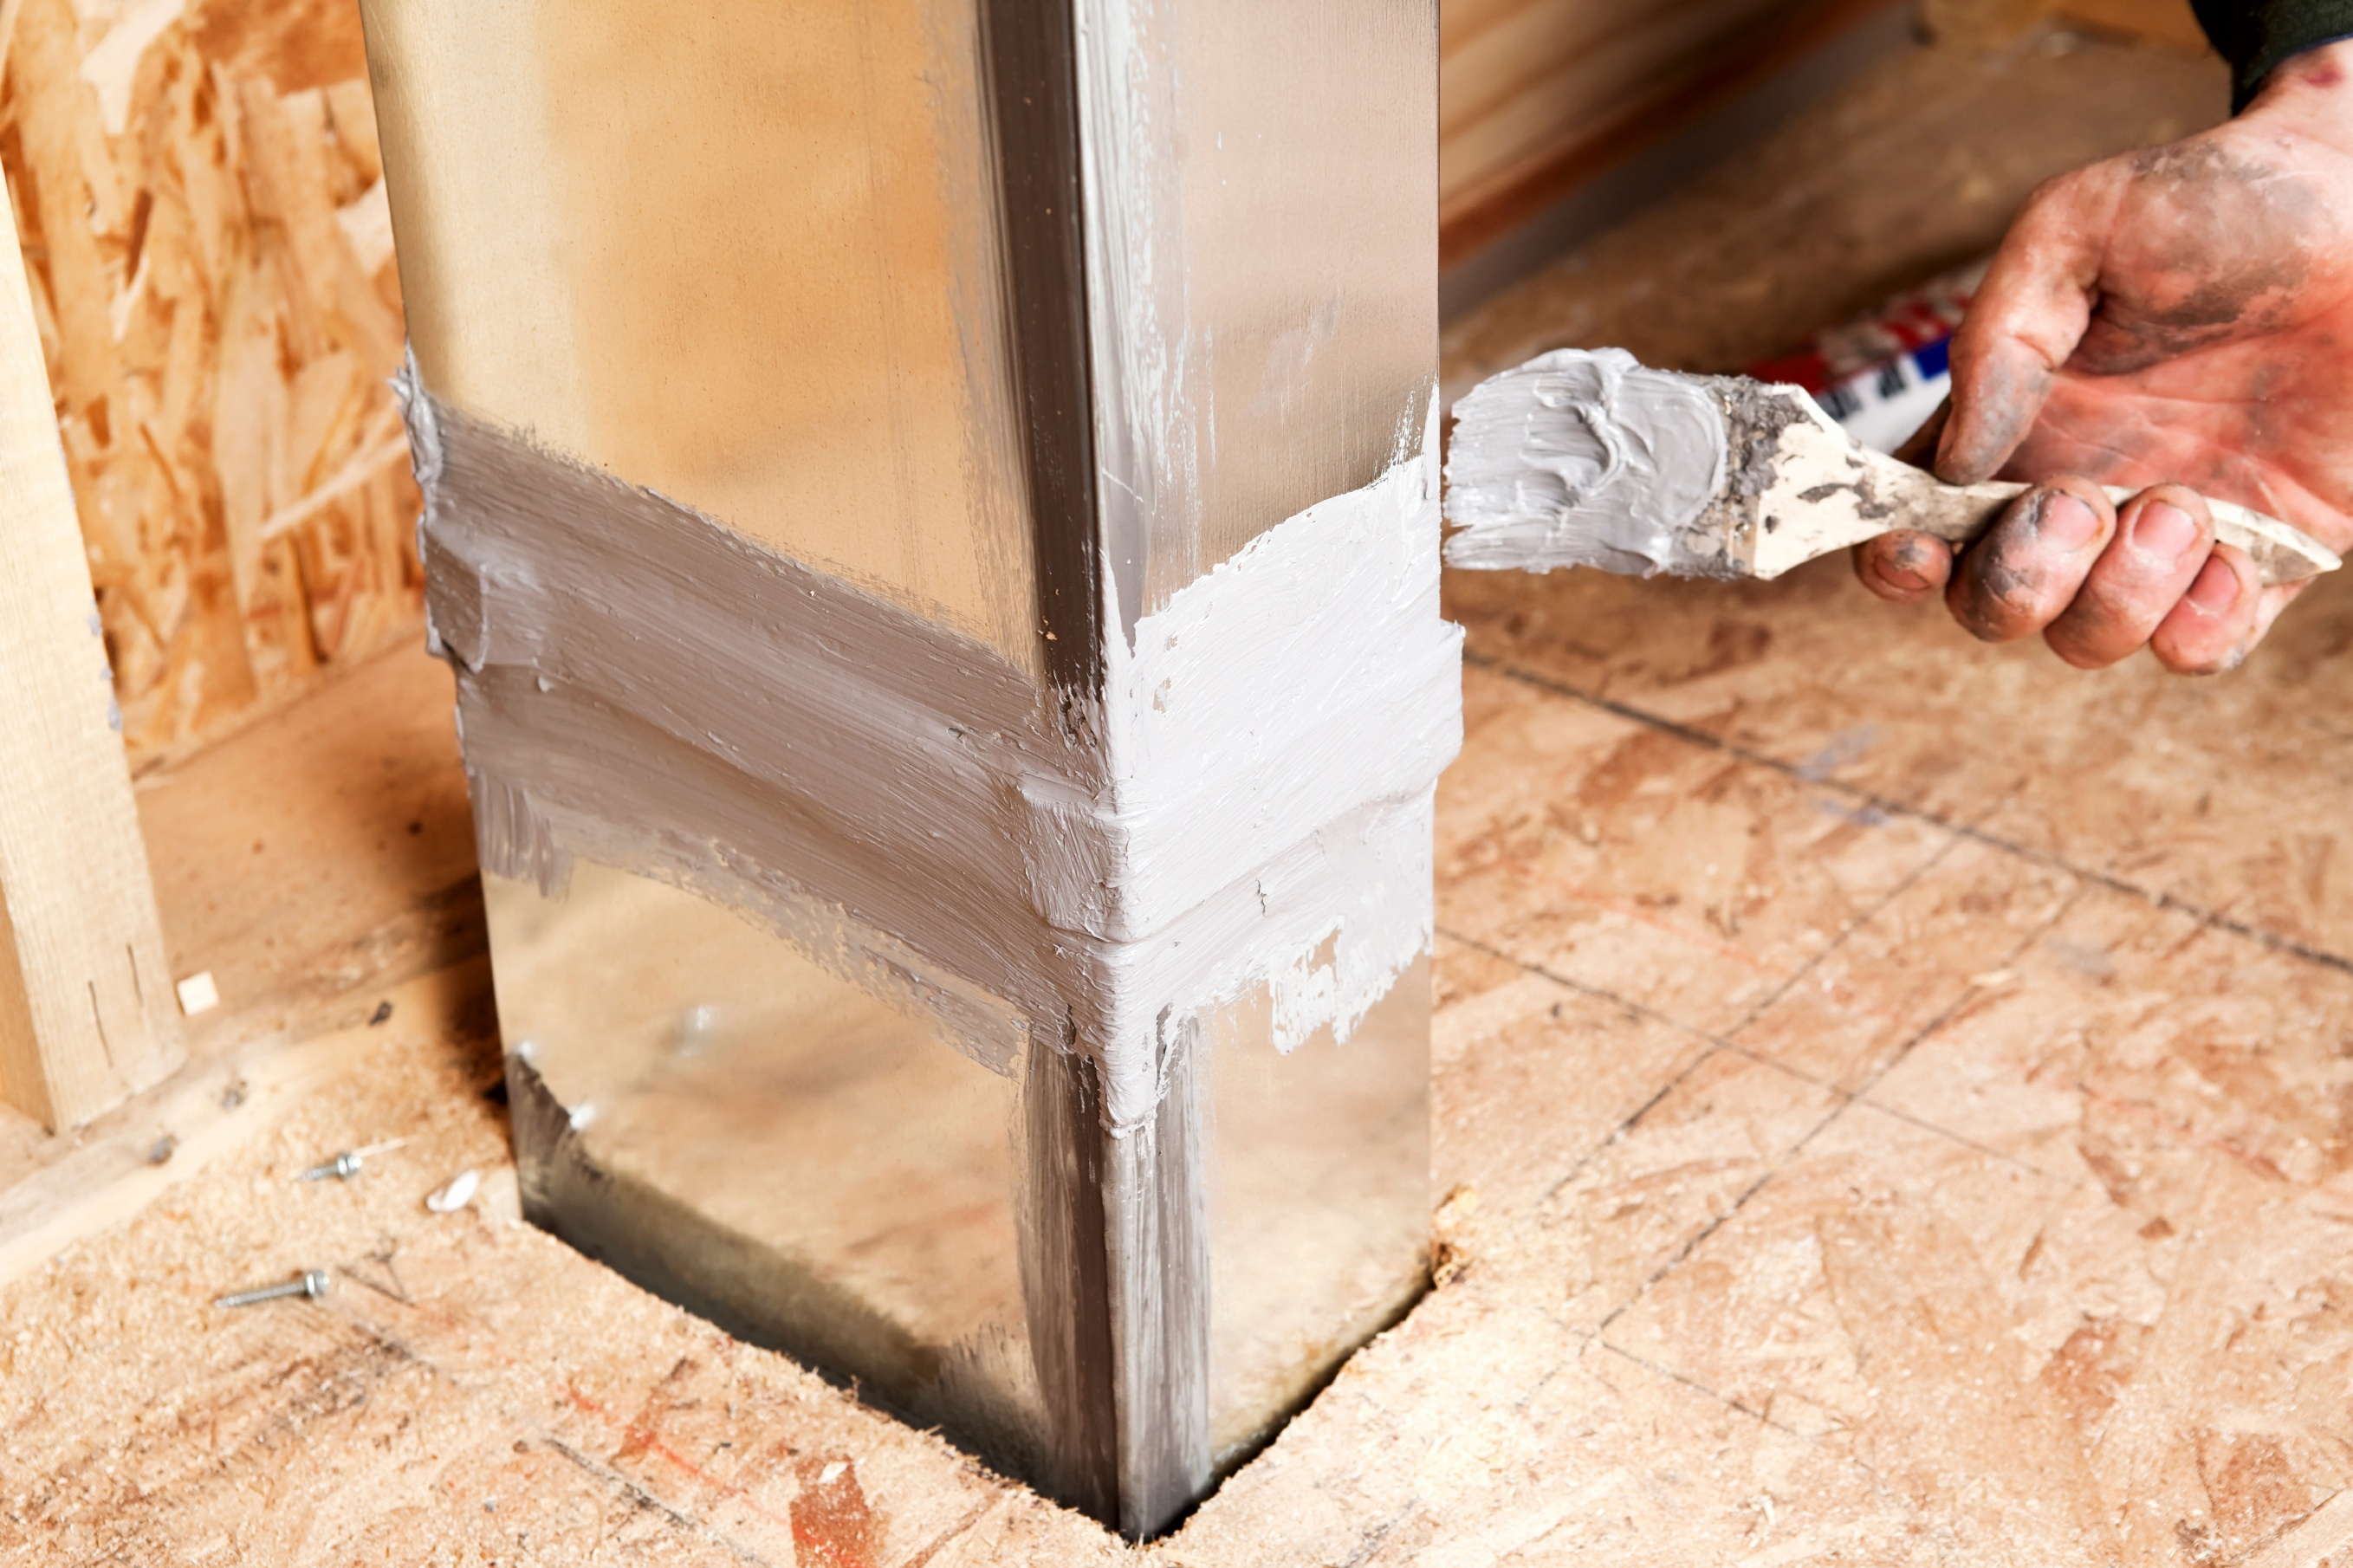 Duct Sealant Vs Plumber S Putty